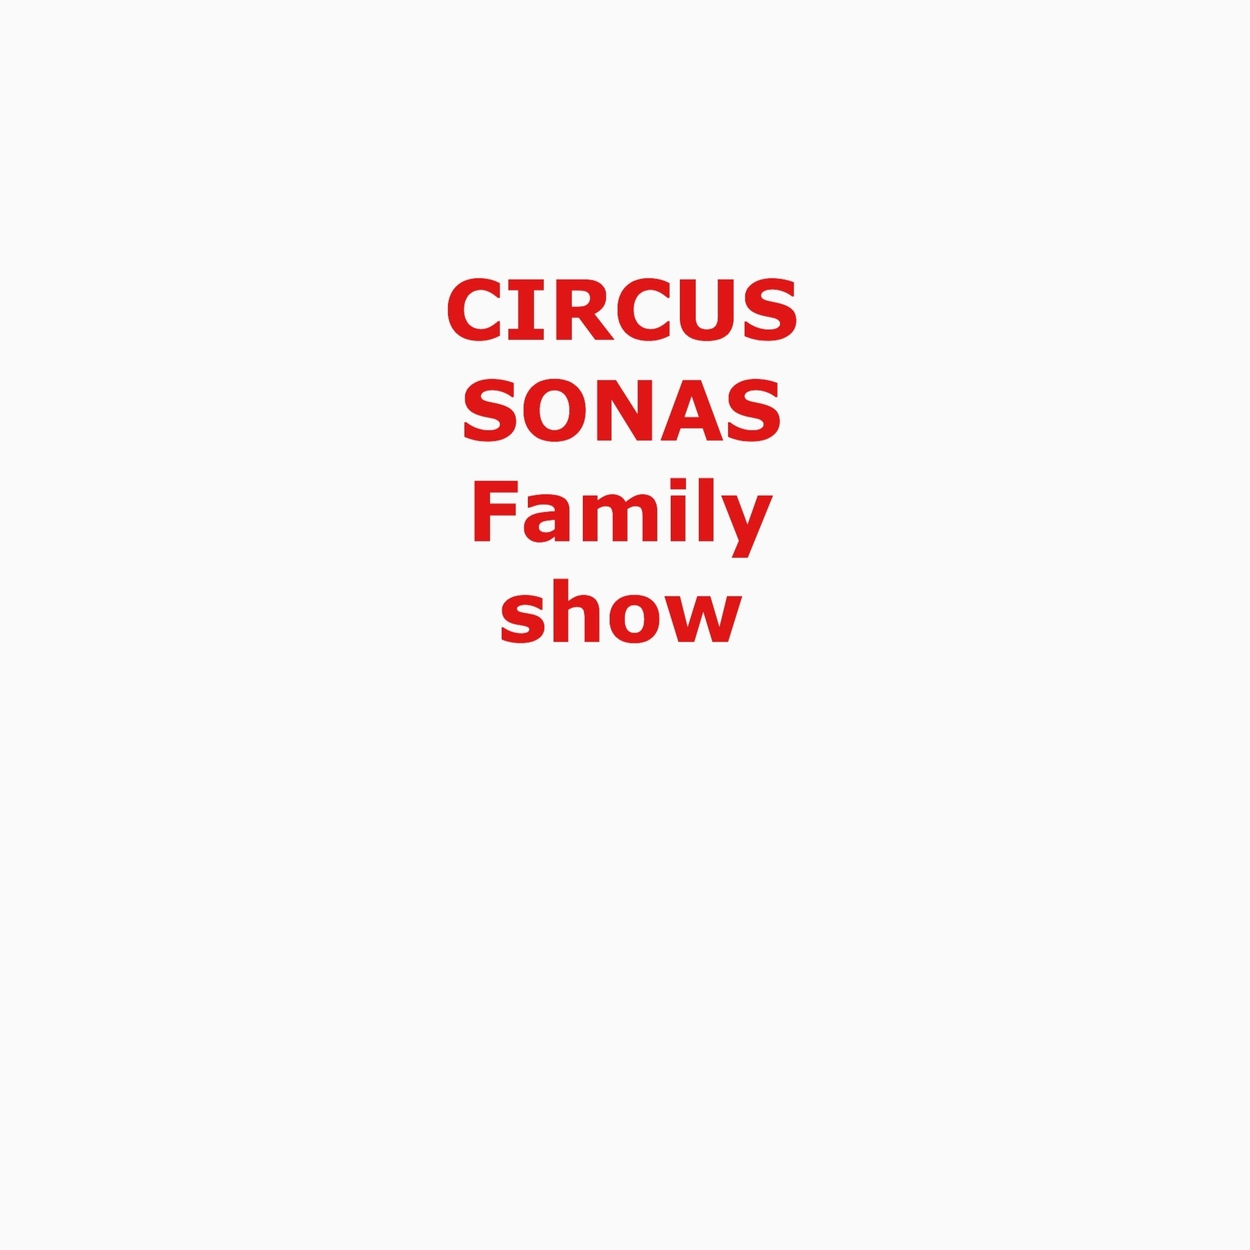 Circus Sonas Family Show